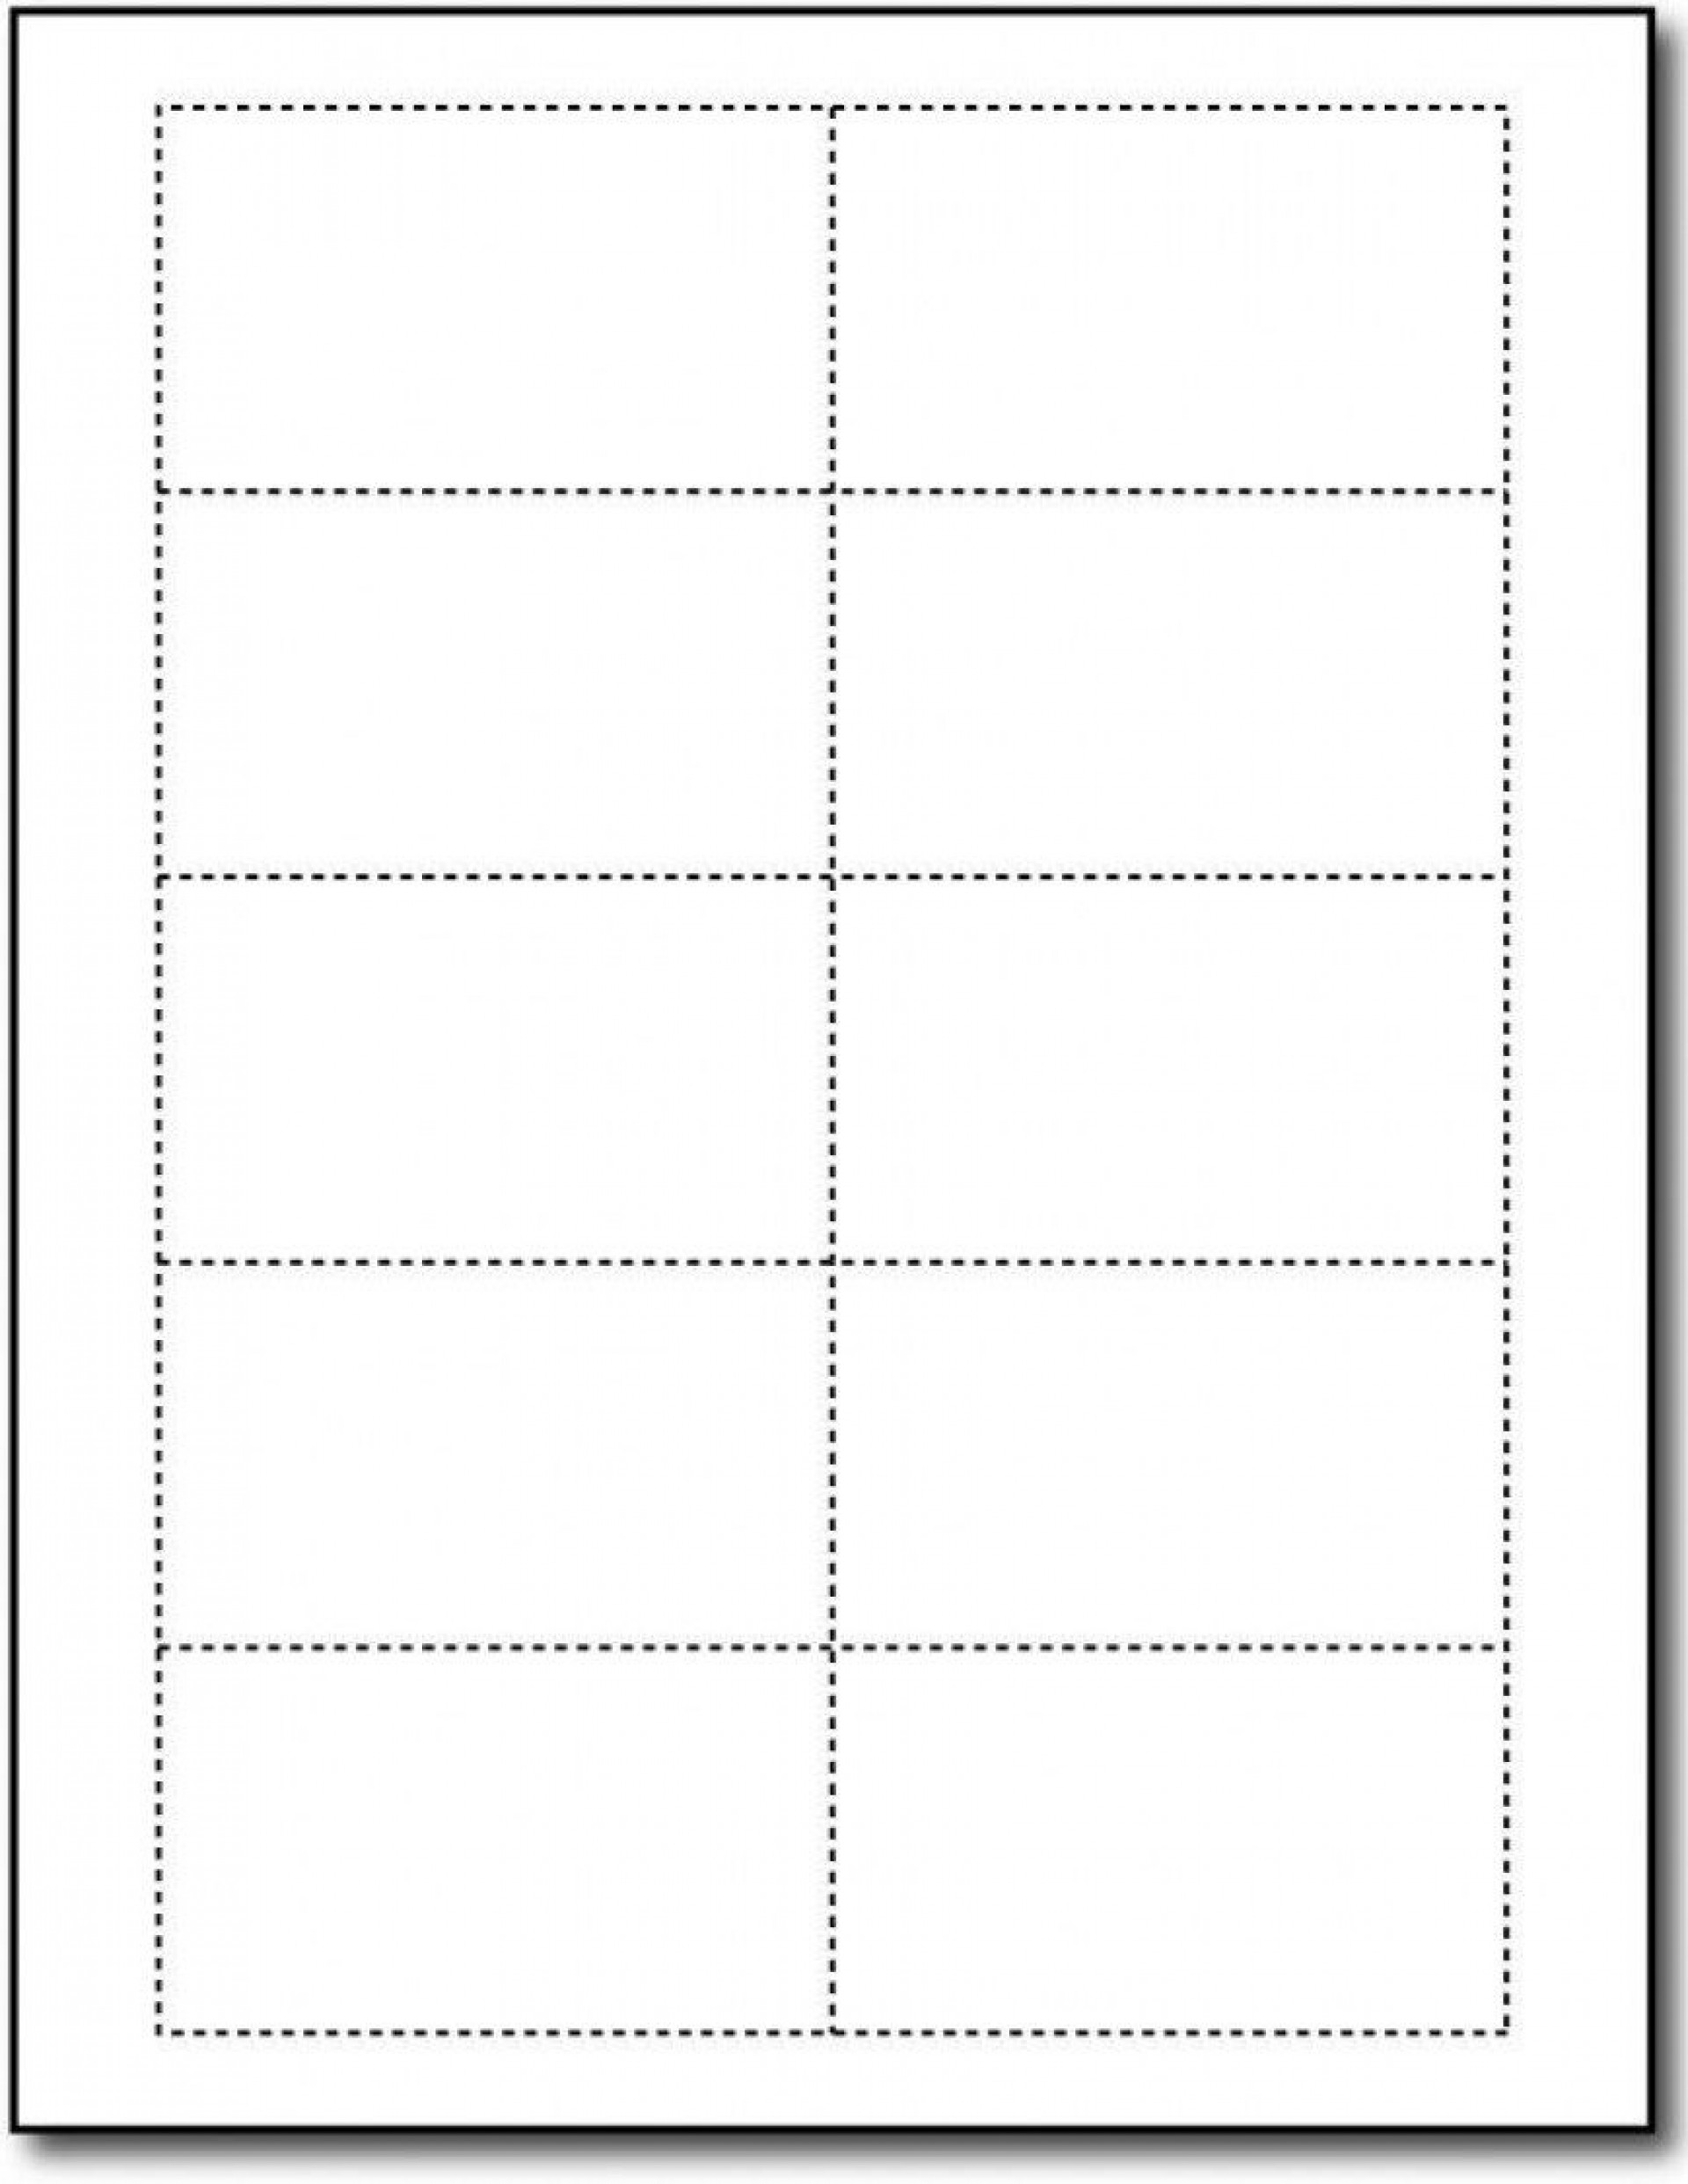 009 Excellent Blank Busines Card Template Word Photo  Vertical Microsoft 2013 Avery1920